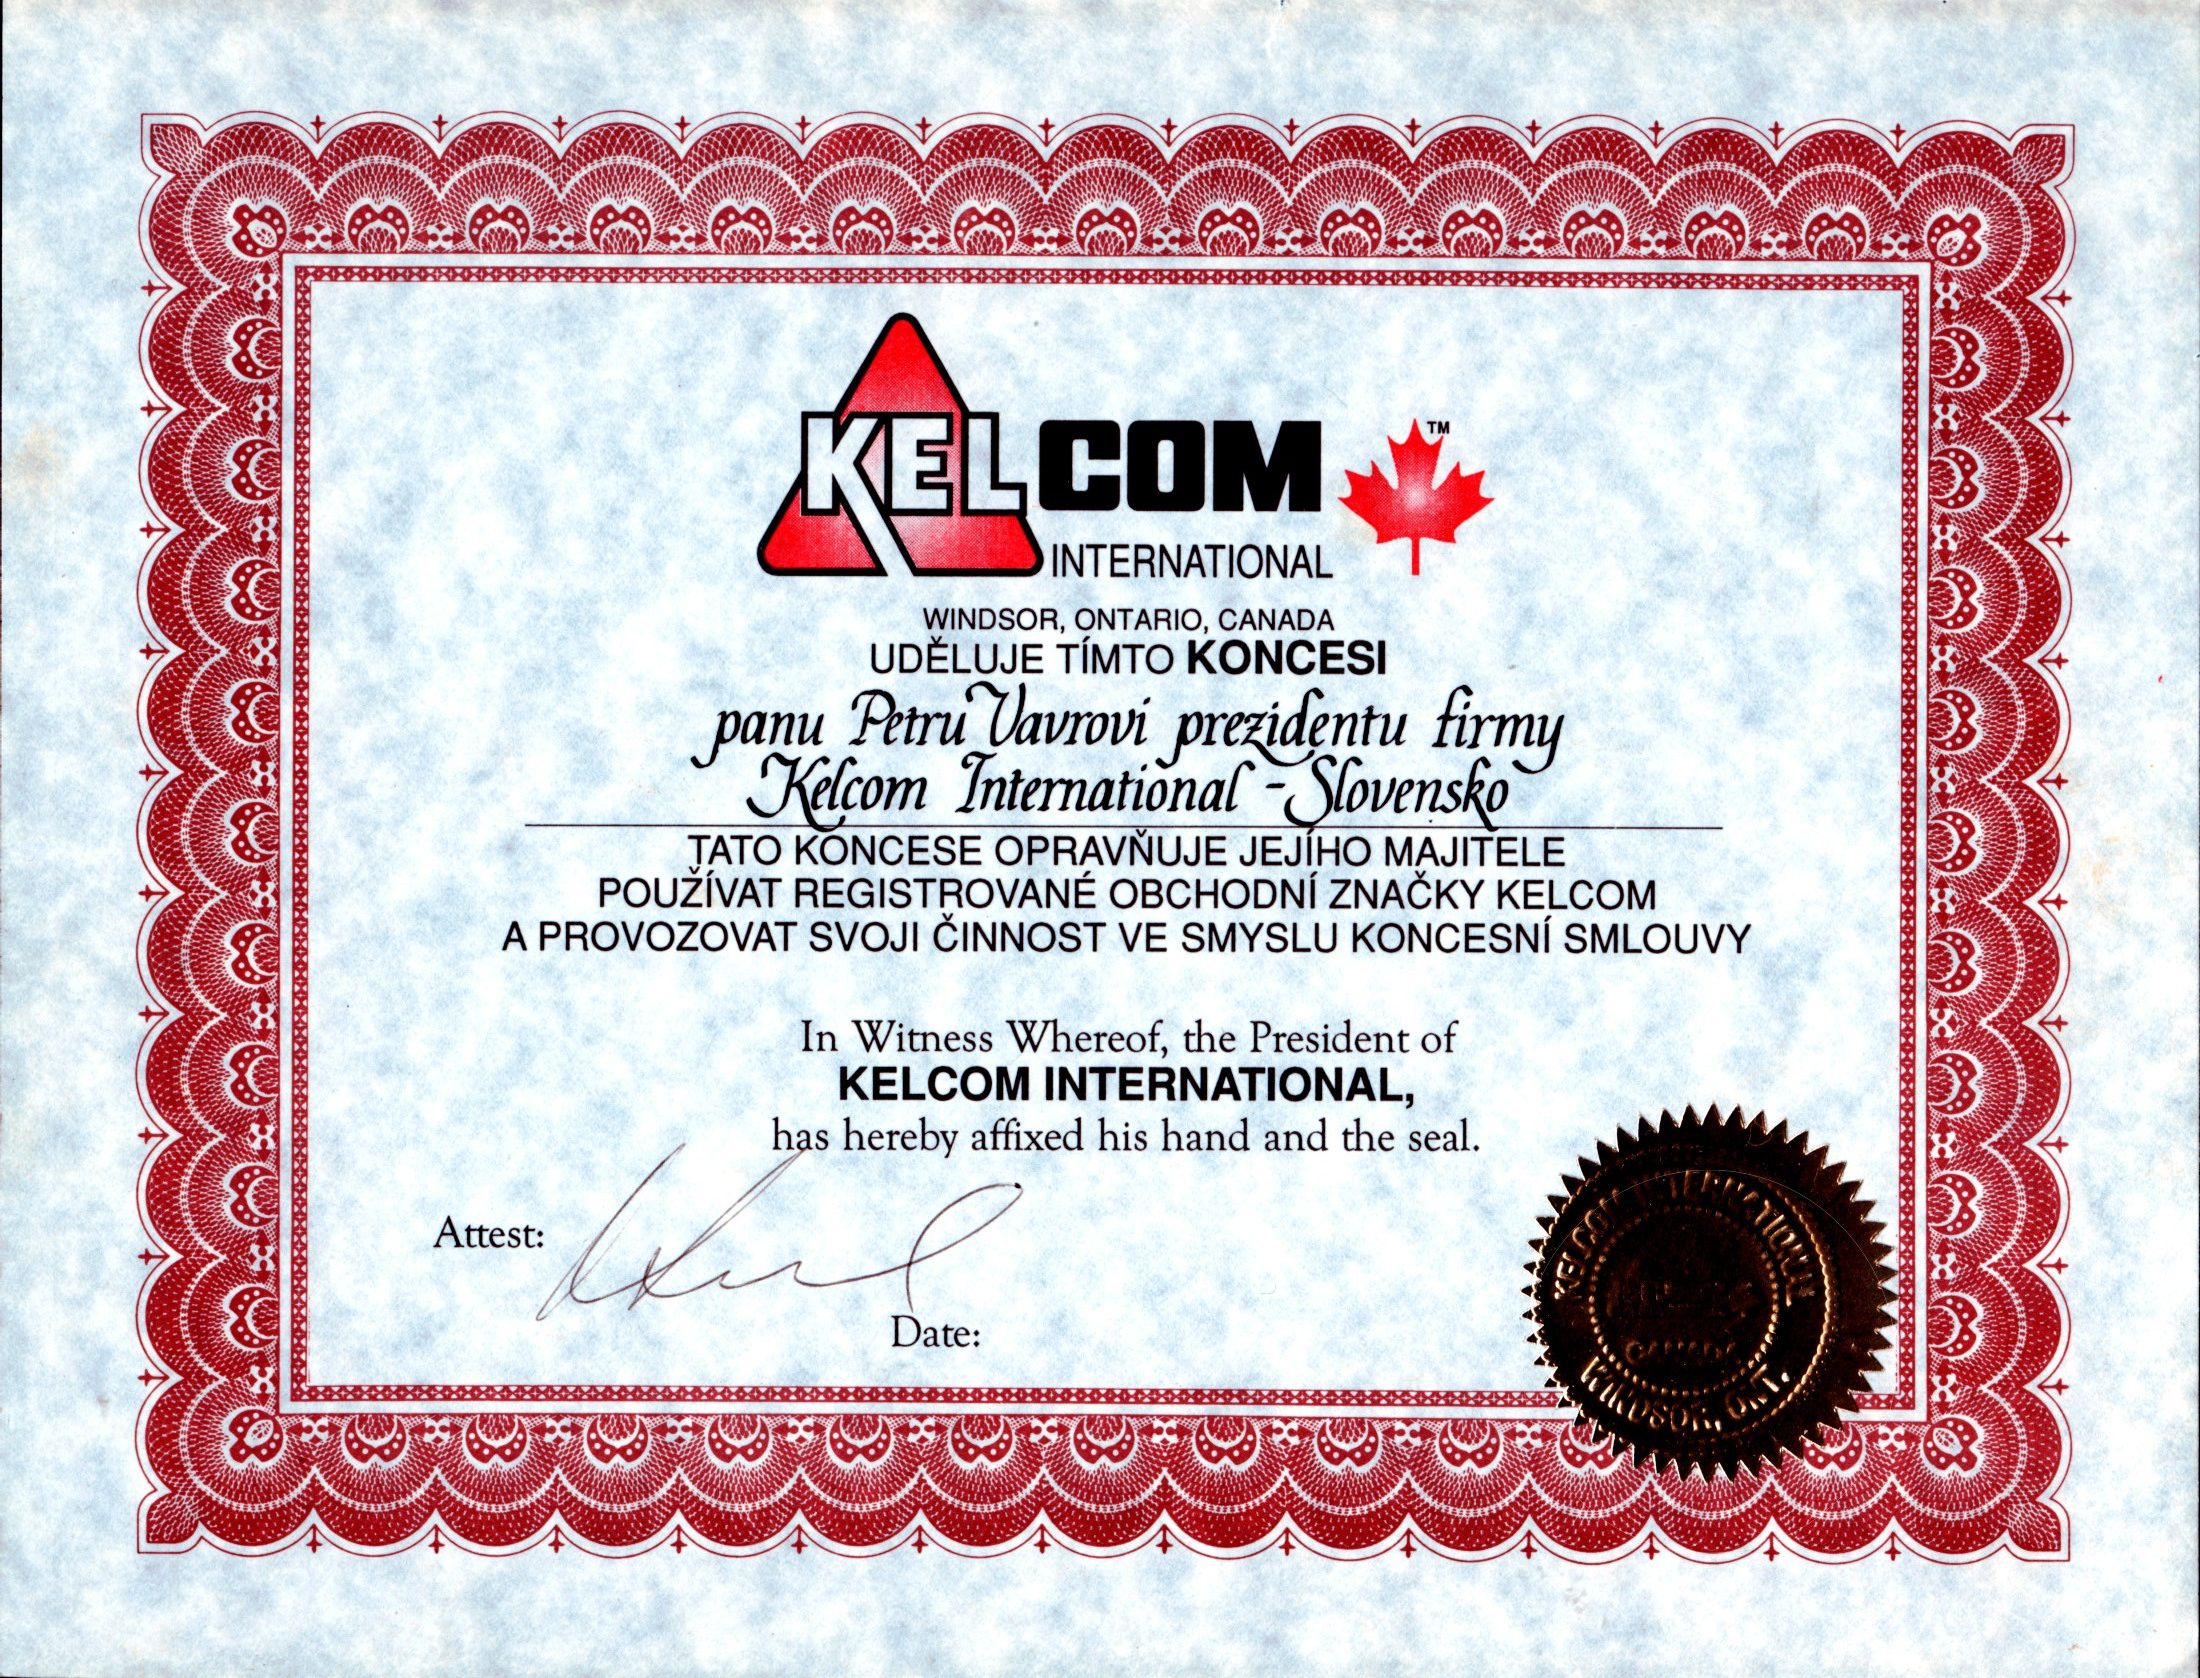 Koncesia KELCOM INTERNATIONAL